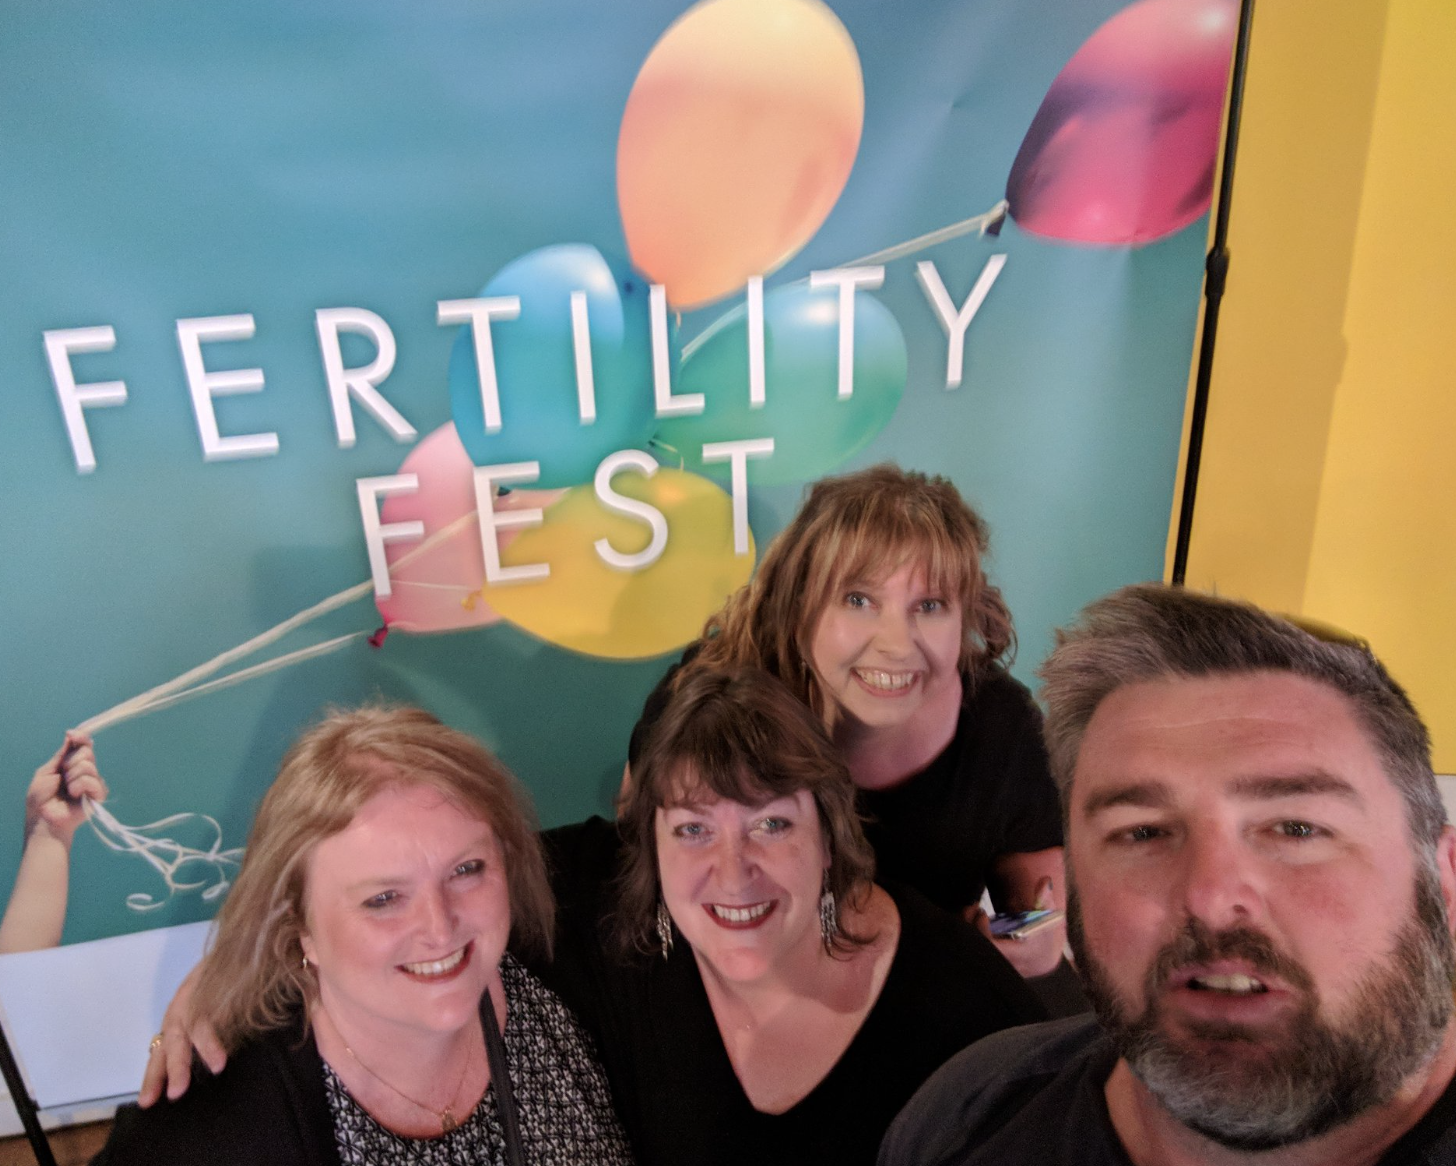 At Fertility Fest with fellow speakers